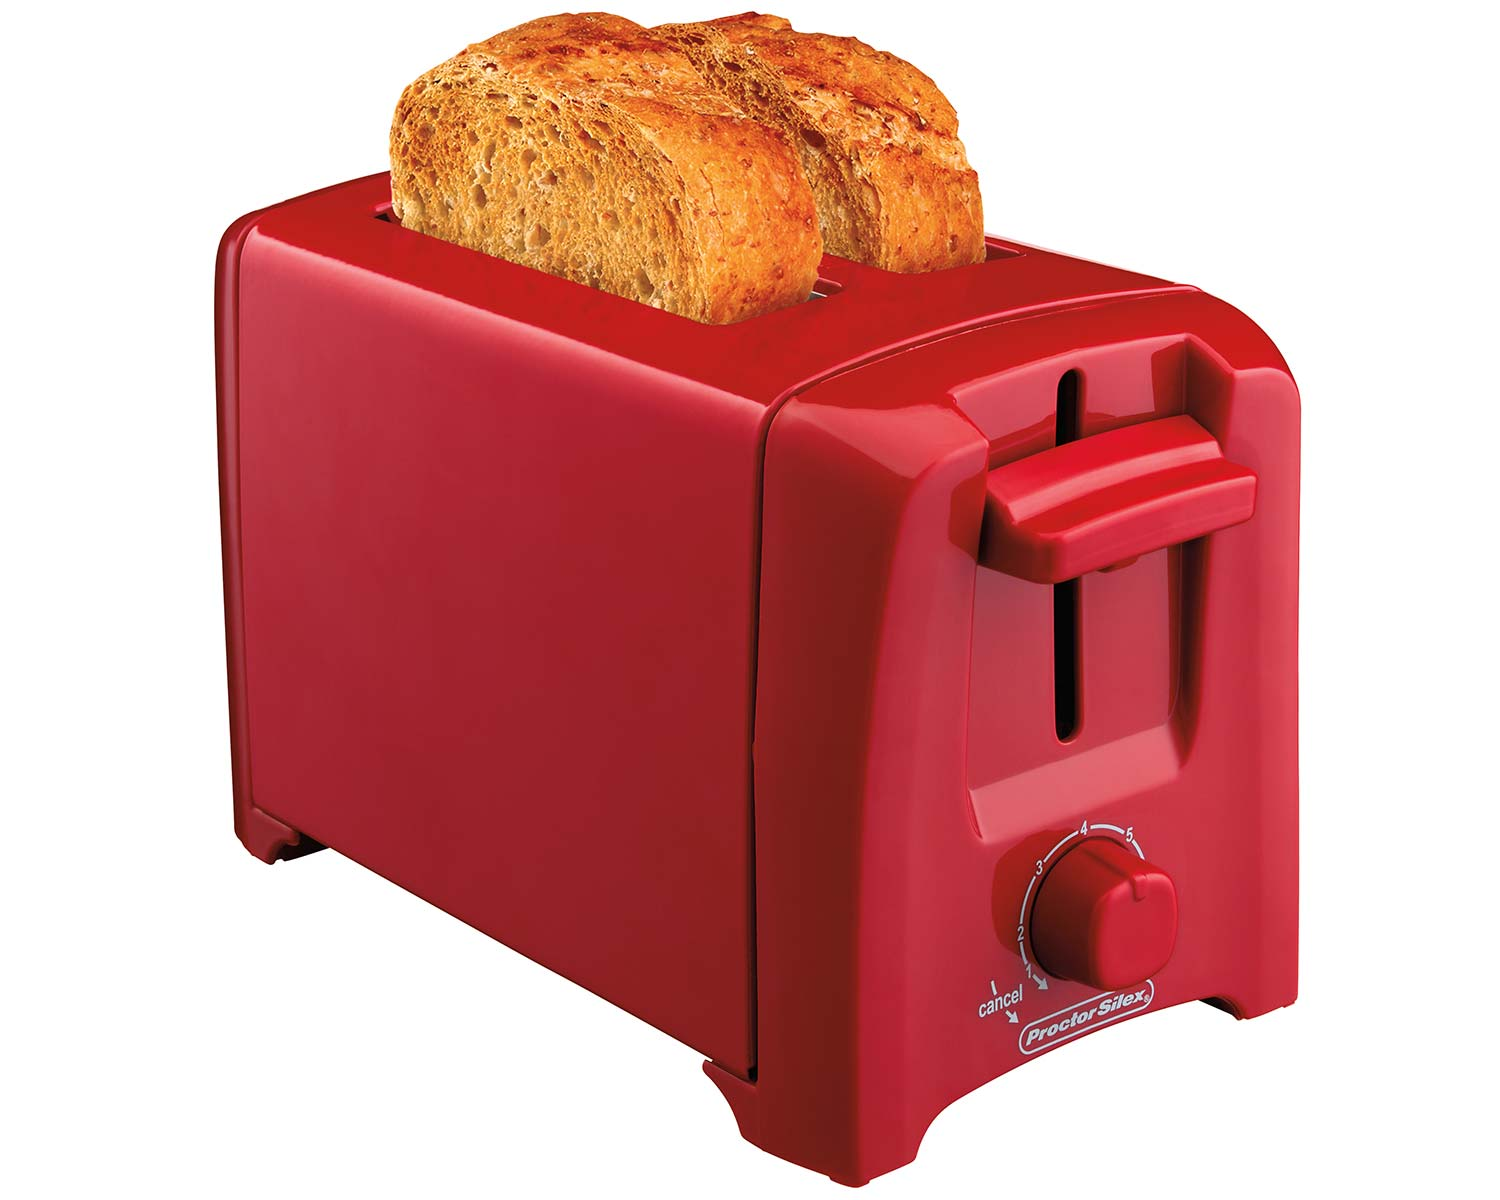 2 Slice Toaster (red)-22620